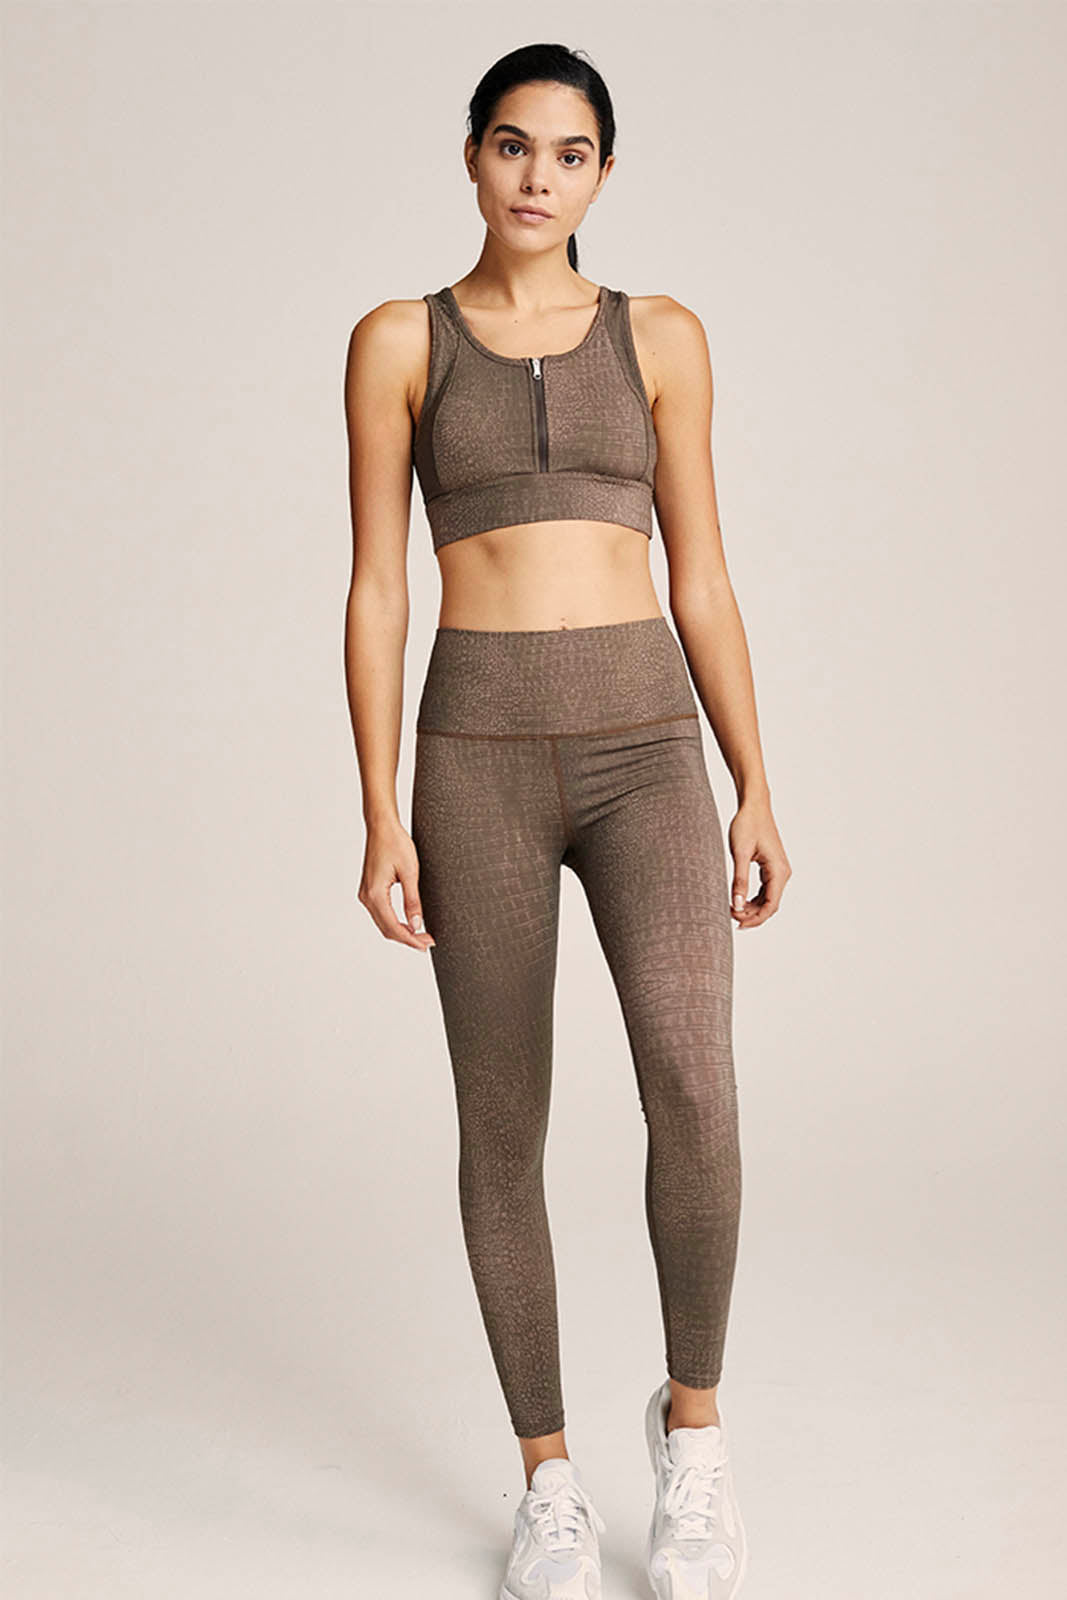 Varley Luna Legging, Alligator